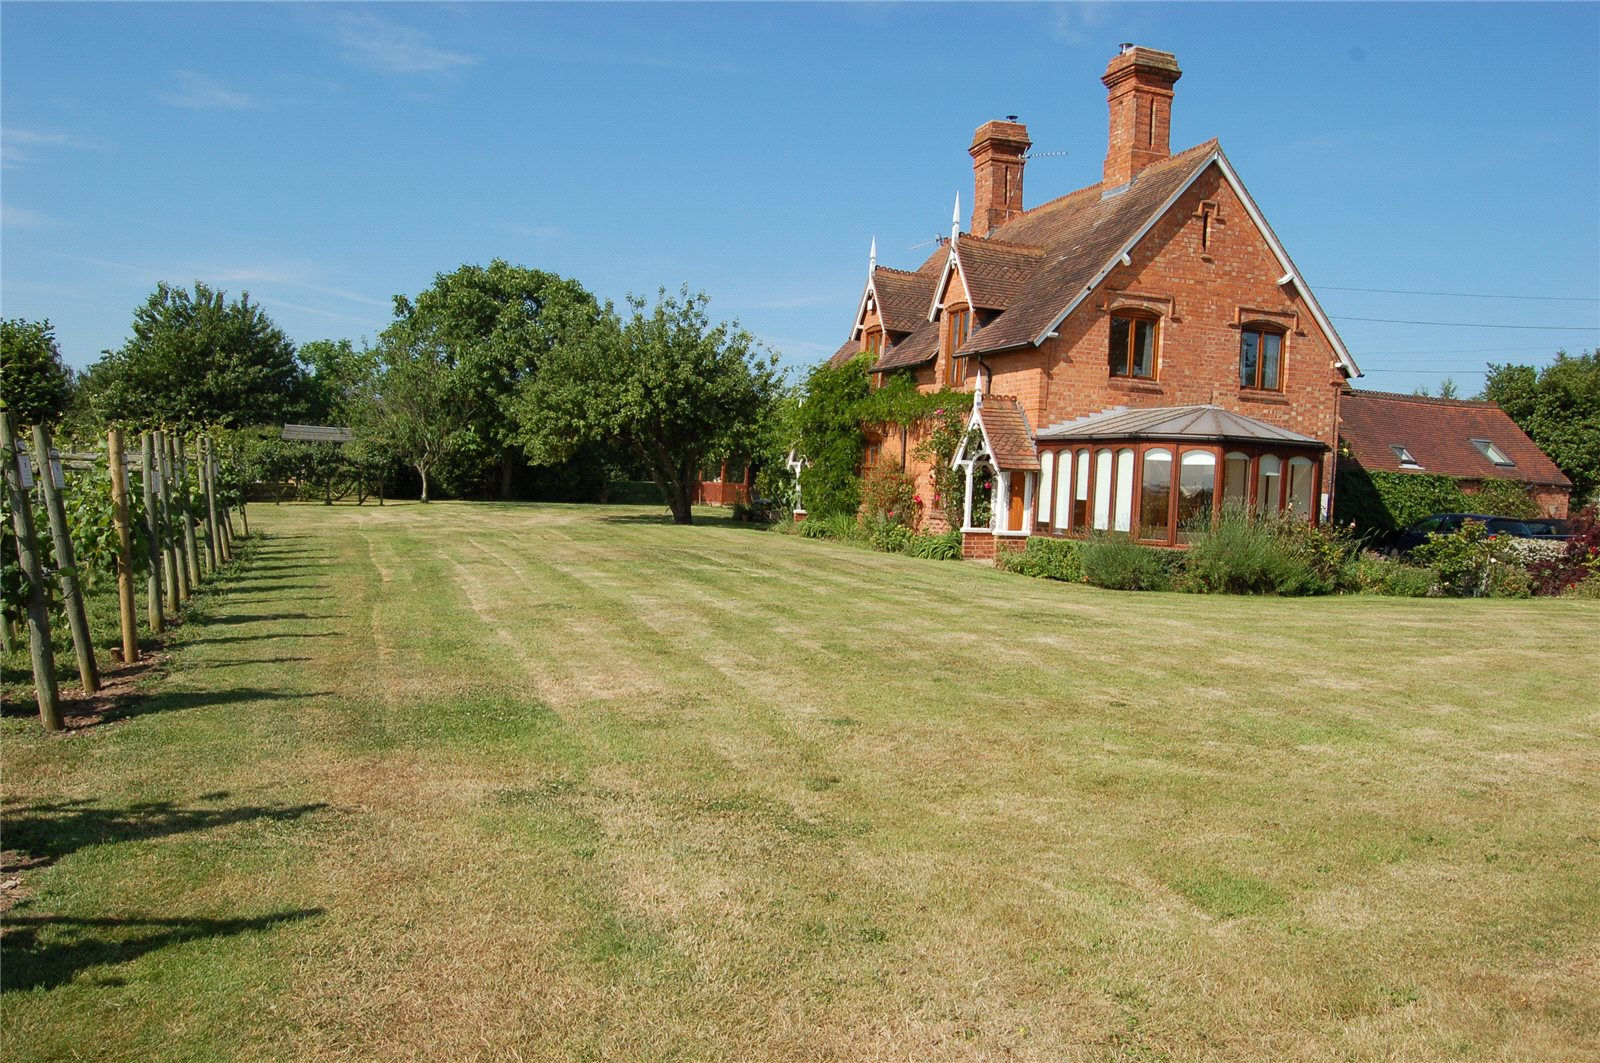 Additional photo for property listing at Kings Lane, Snitterfield, Stratford-upon-Avon, Warwickshire, CV37 Stratford Upon Avon, Anh Quốc